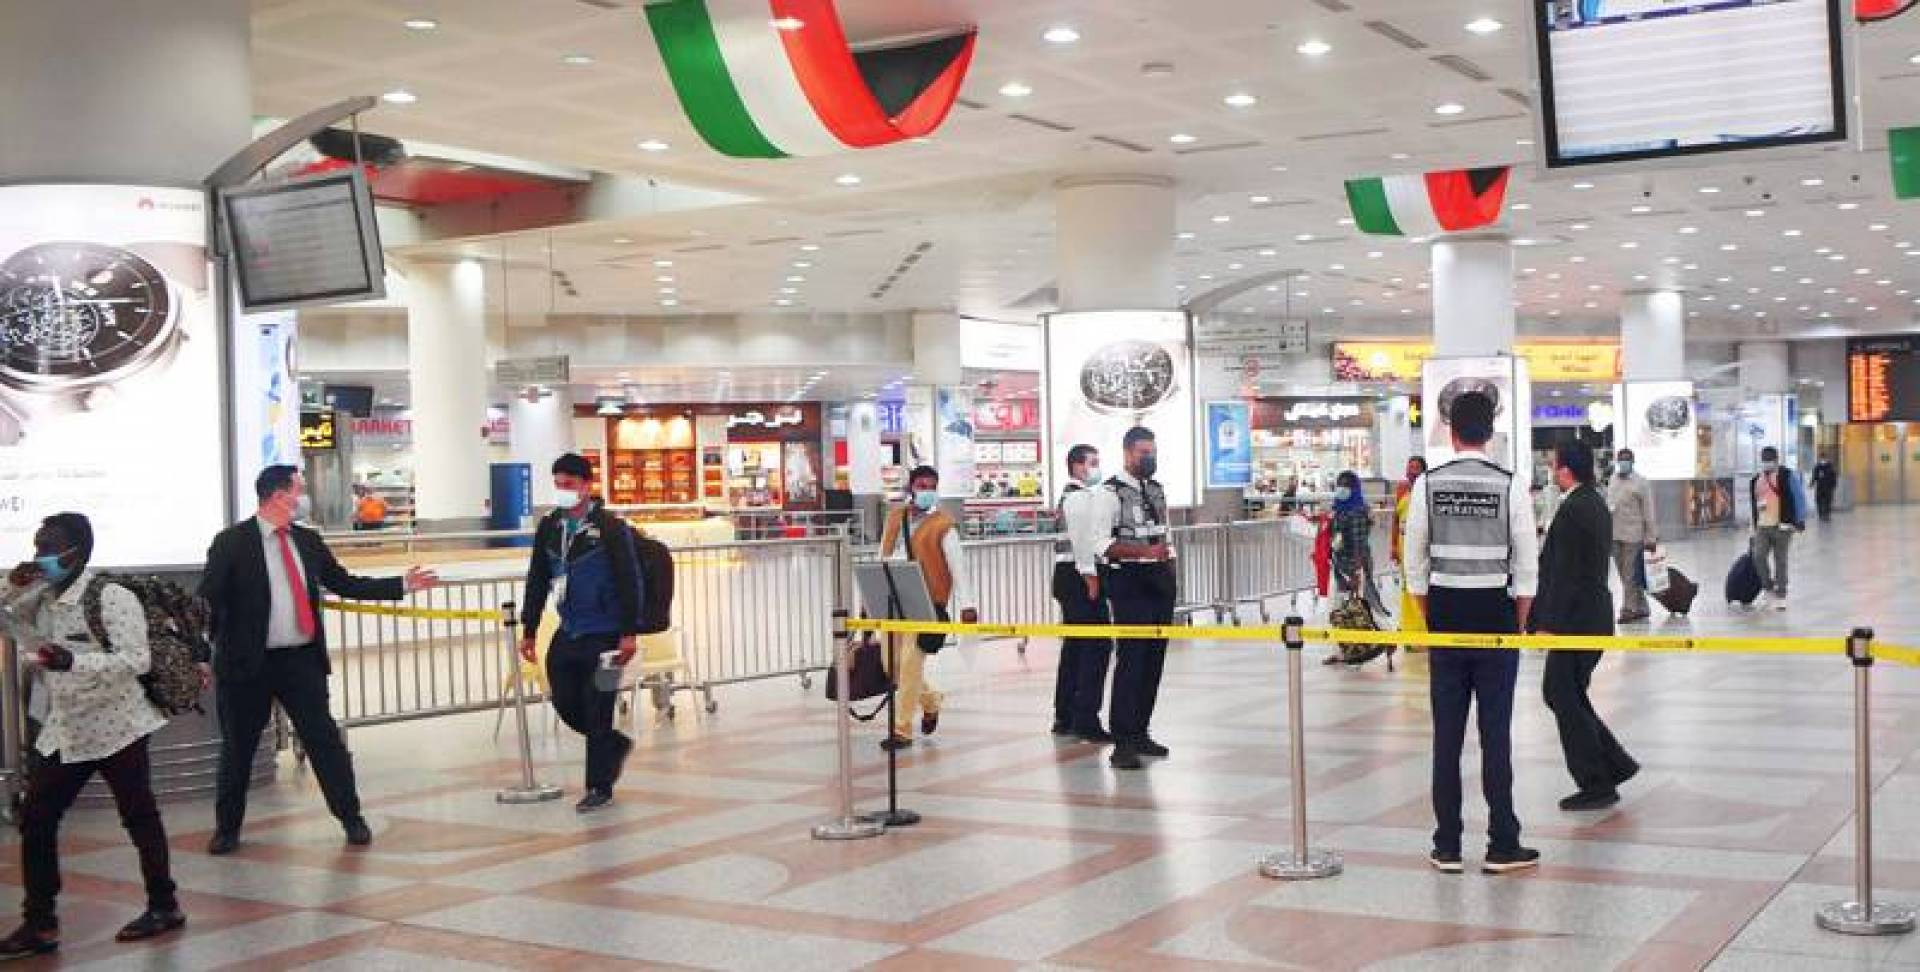 Deserted look at Airport as entry ban for non-Kuwaitis continues